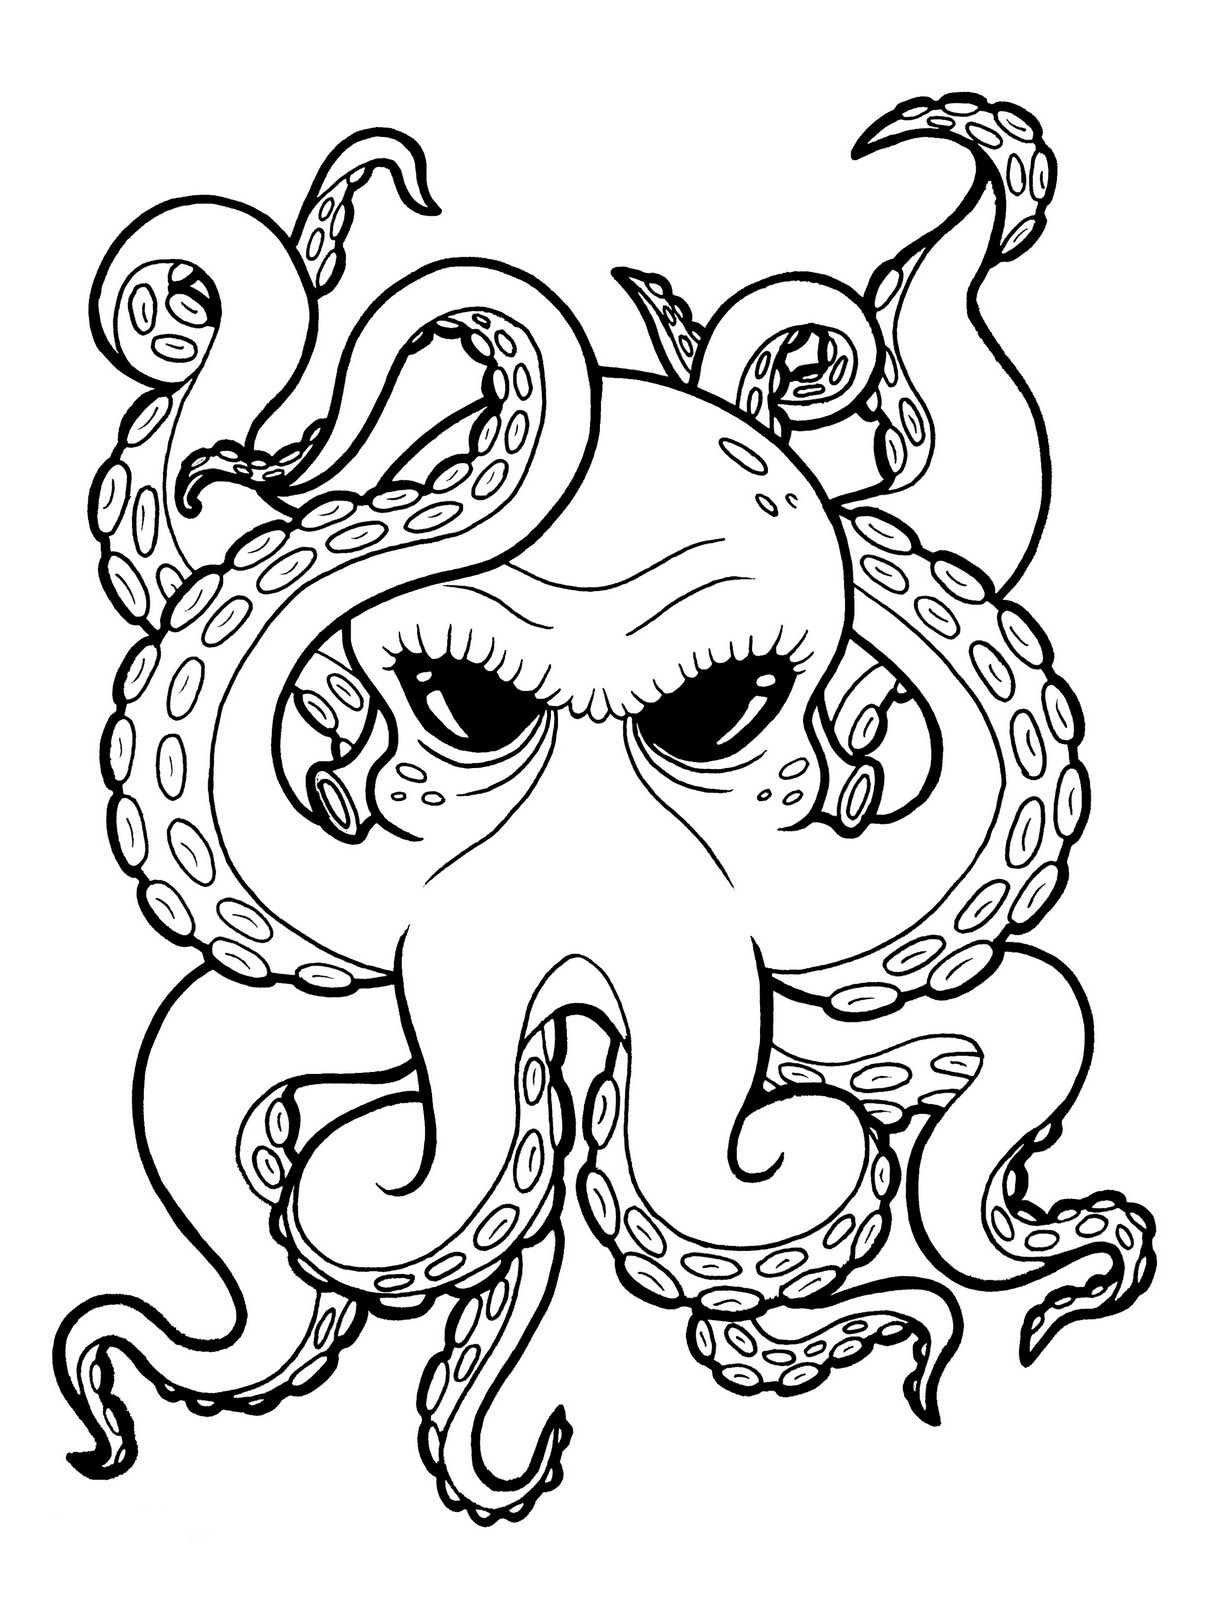 1225x1600 Cartoon Octopus Drawing Cartoon Octopus Drawing Cartoon Octopus